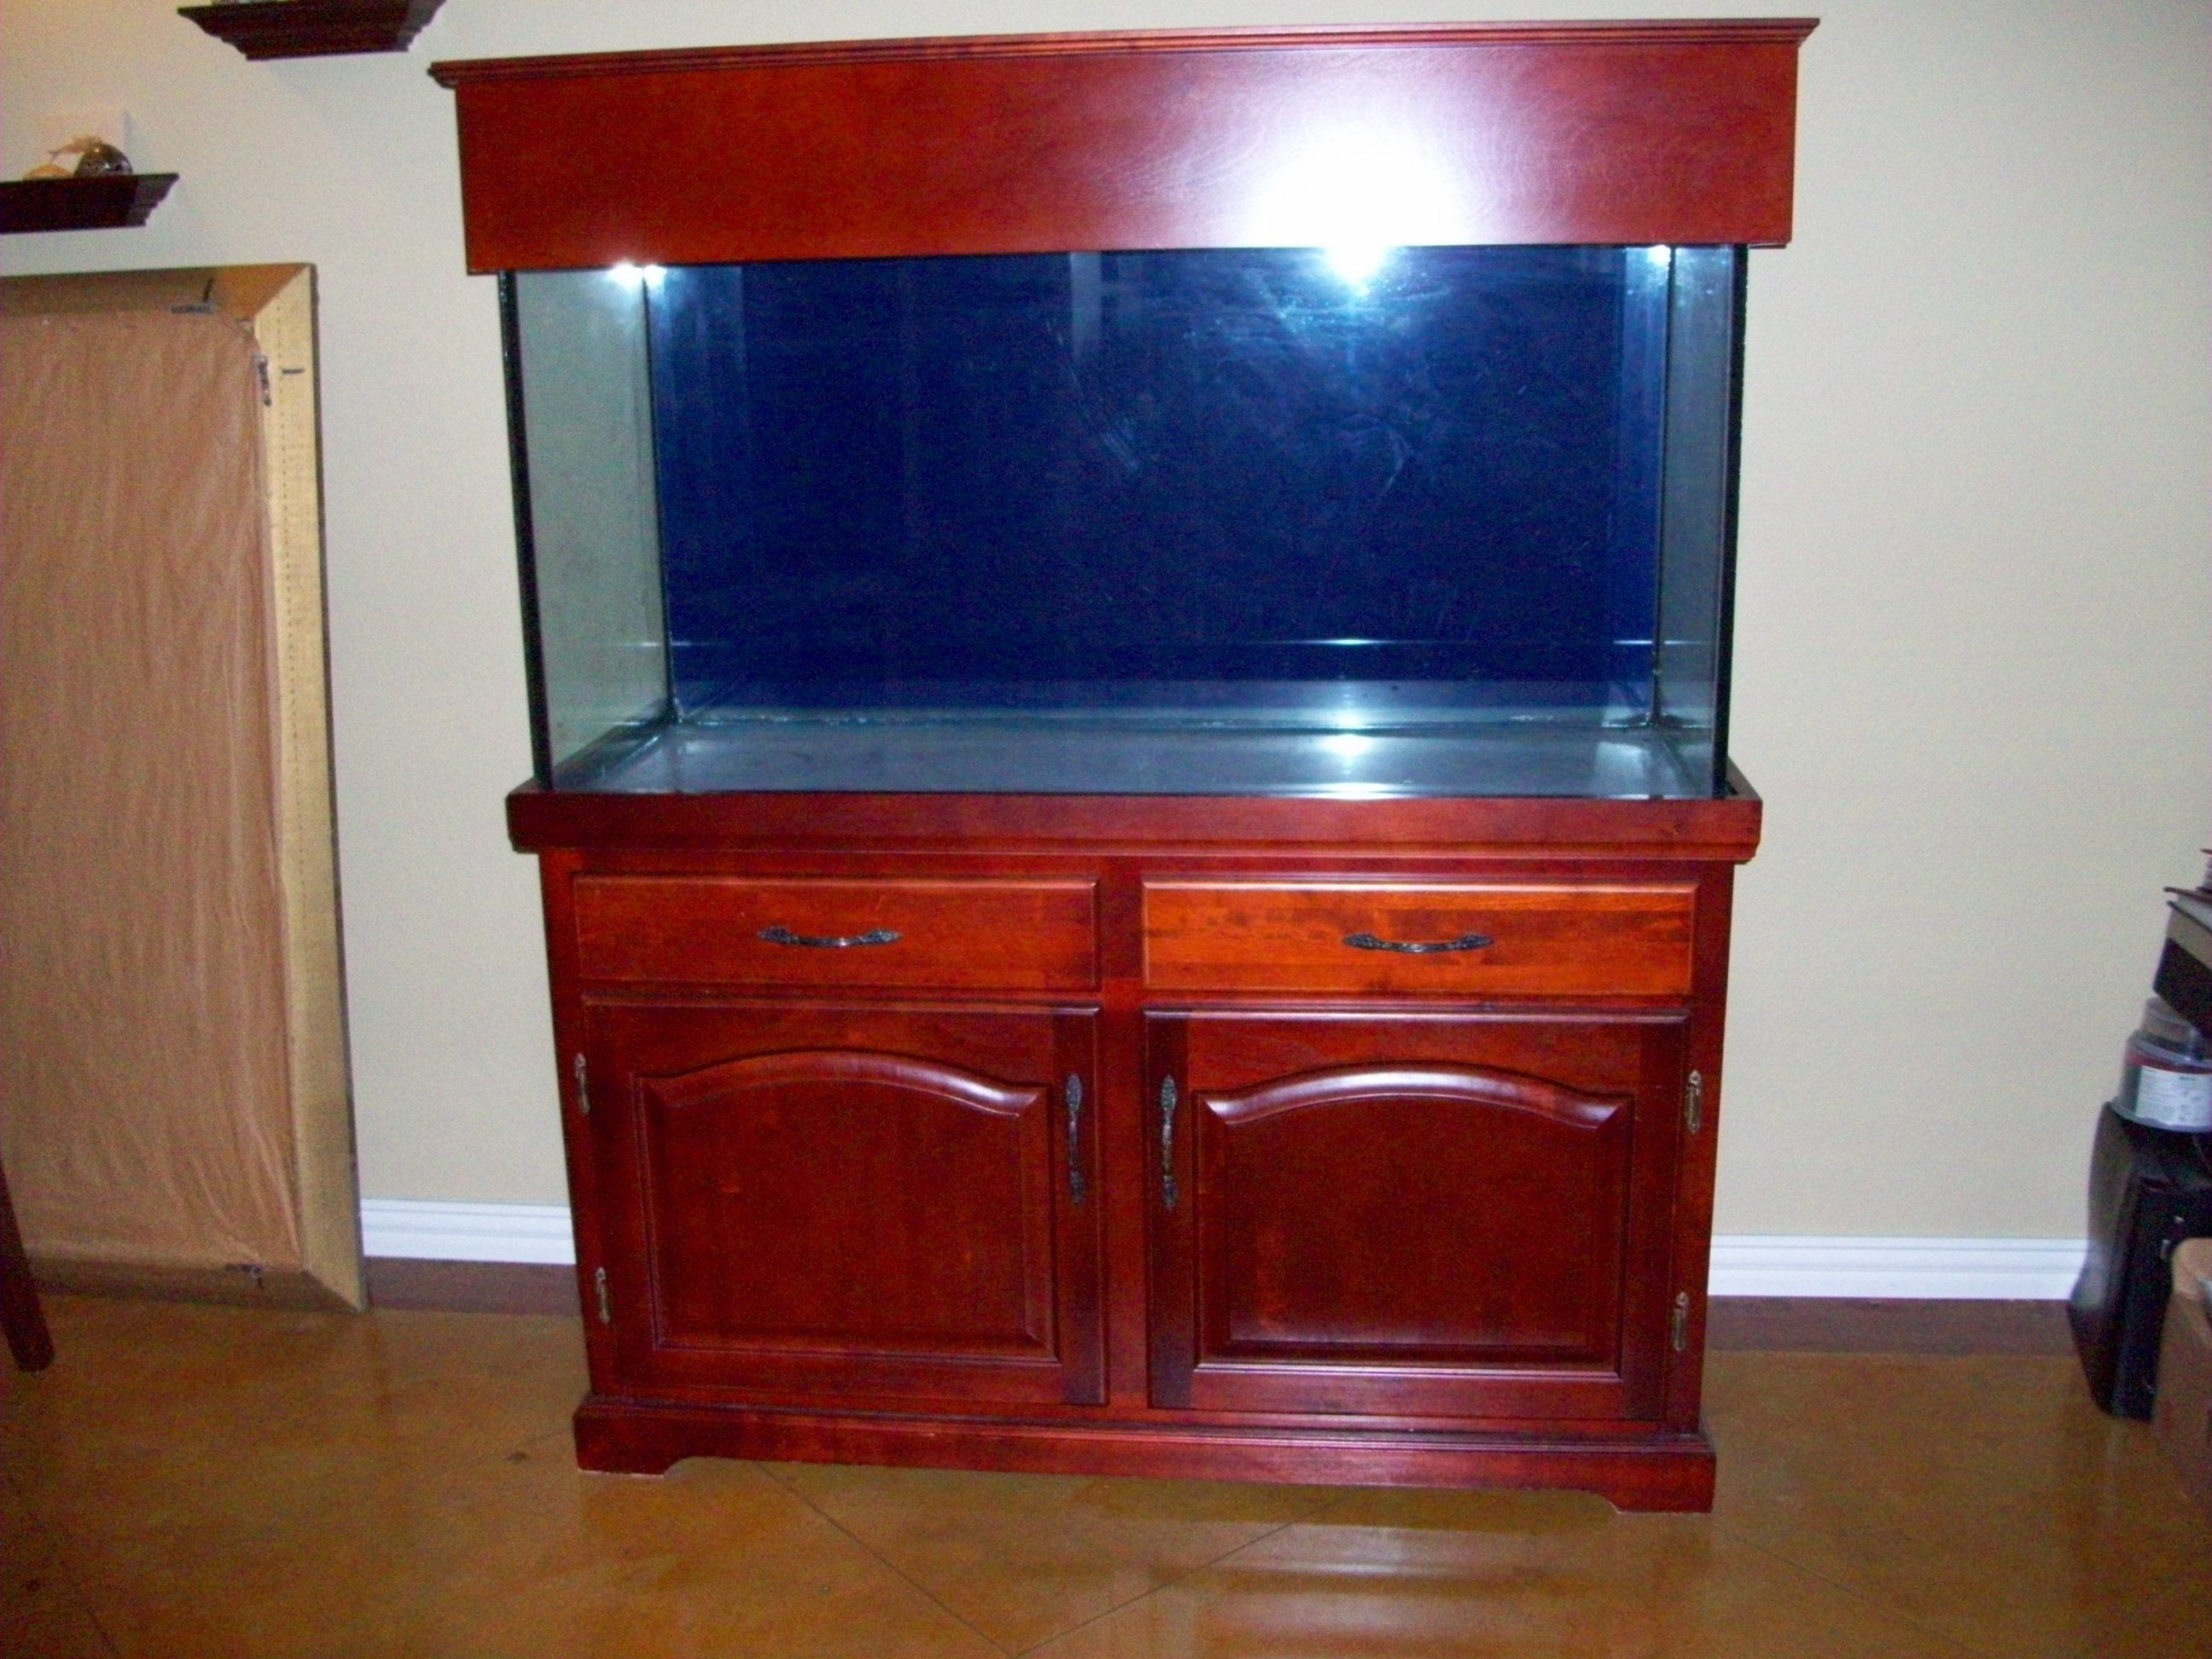 post-1587-088928400 1283610766_thumb.jpg & 90 Gallon Aquarium with Marineland Stand u0026 Canopy - Hardware ...